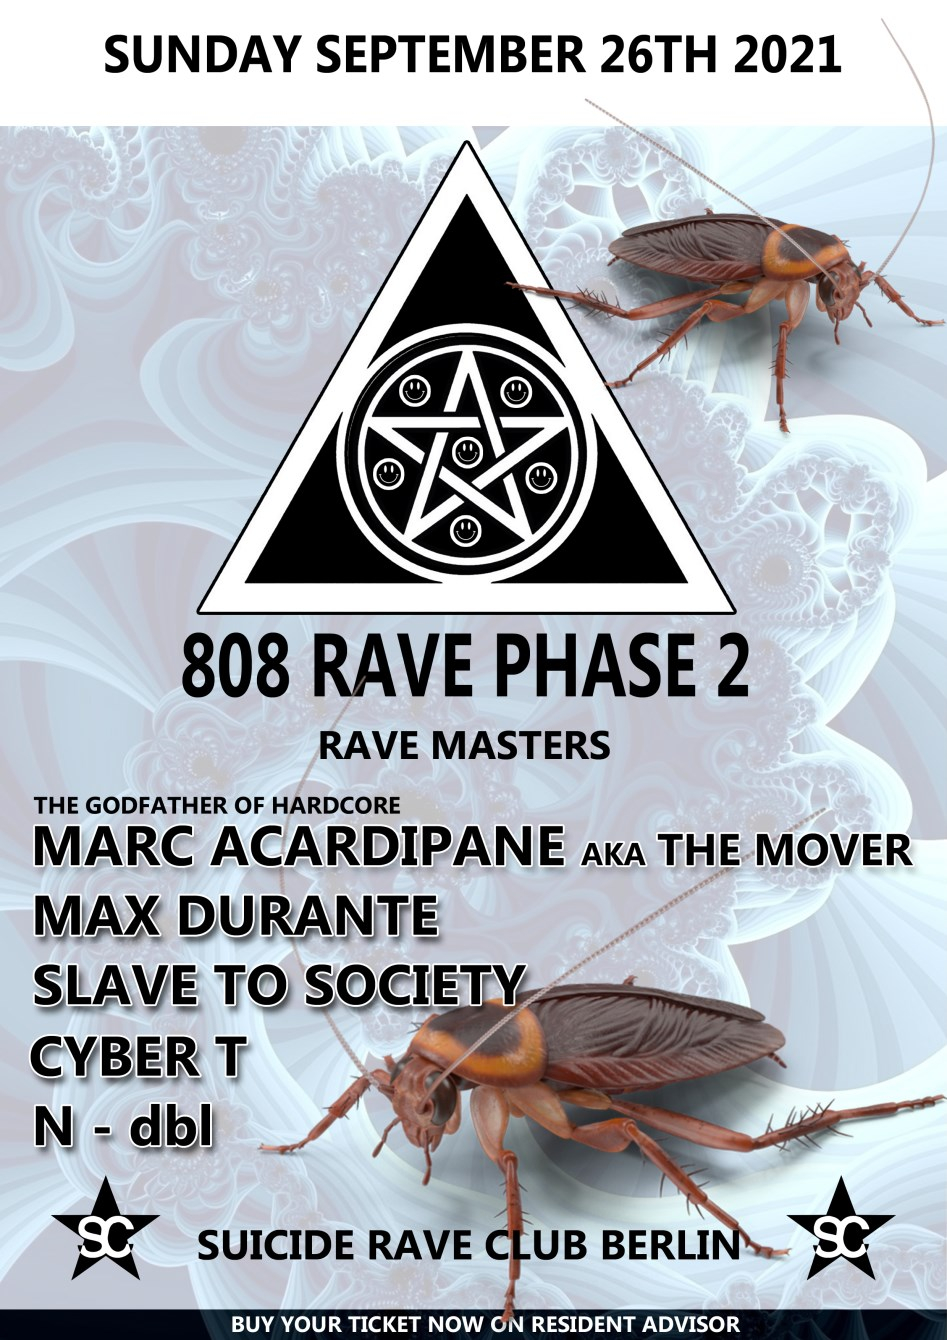 808 Rave Phase 2 with Marc Acardipane aka The Mover, Max Durante, Slave to Society and More - Flyer front